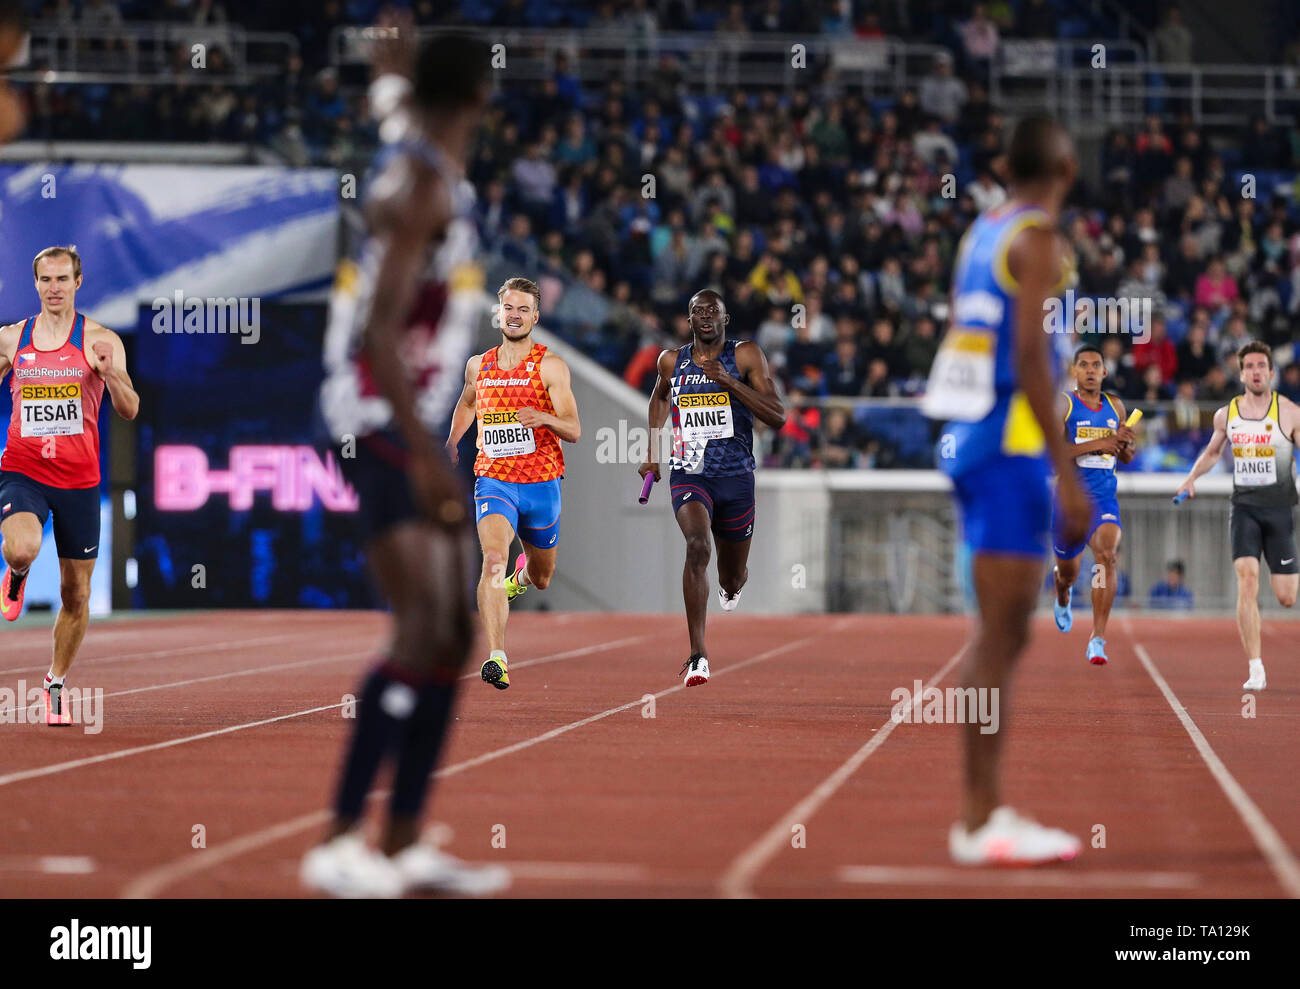 YOKOHAMA, JAPAN - MAY 12: Mame-Ibra Anne of France in the B final of the mens 4x400m  during Day 2 of the 2019 IAAF World Relay Championships at the Nissan Stadium on Sunday May 12, 2019 in Yokohama, Japan. (Photo by Roger Sedres for the IAAF) - Stock Image